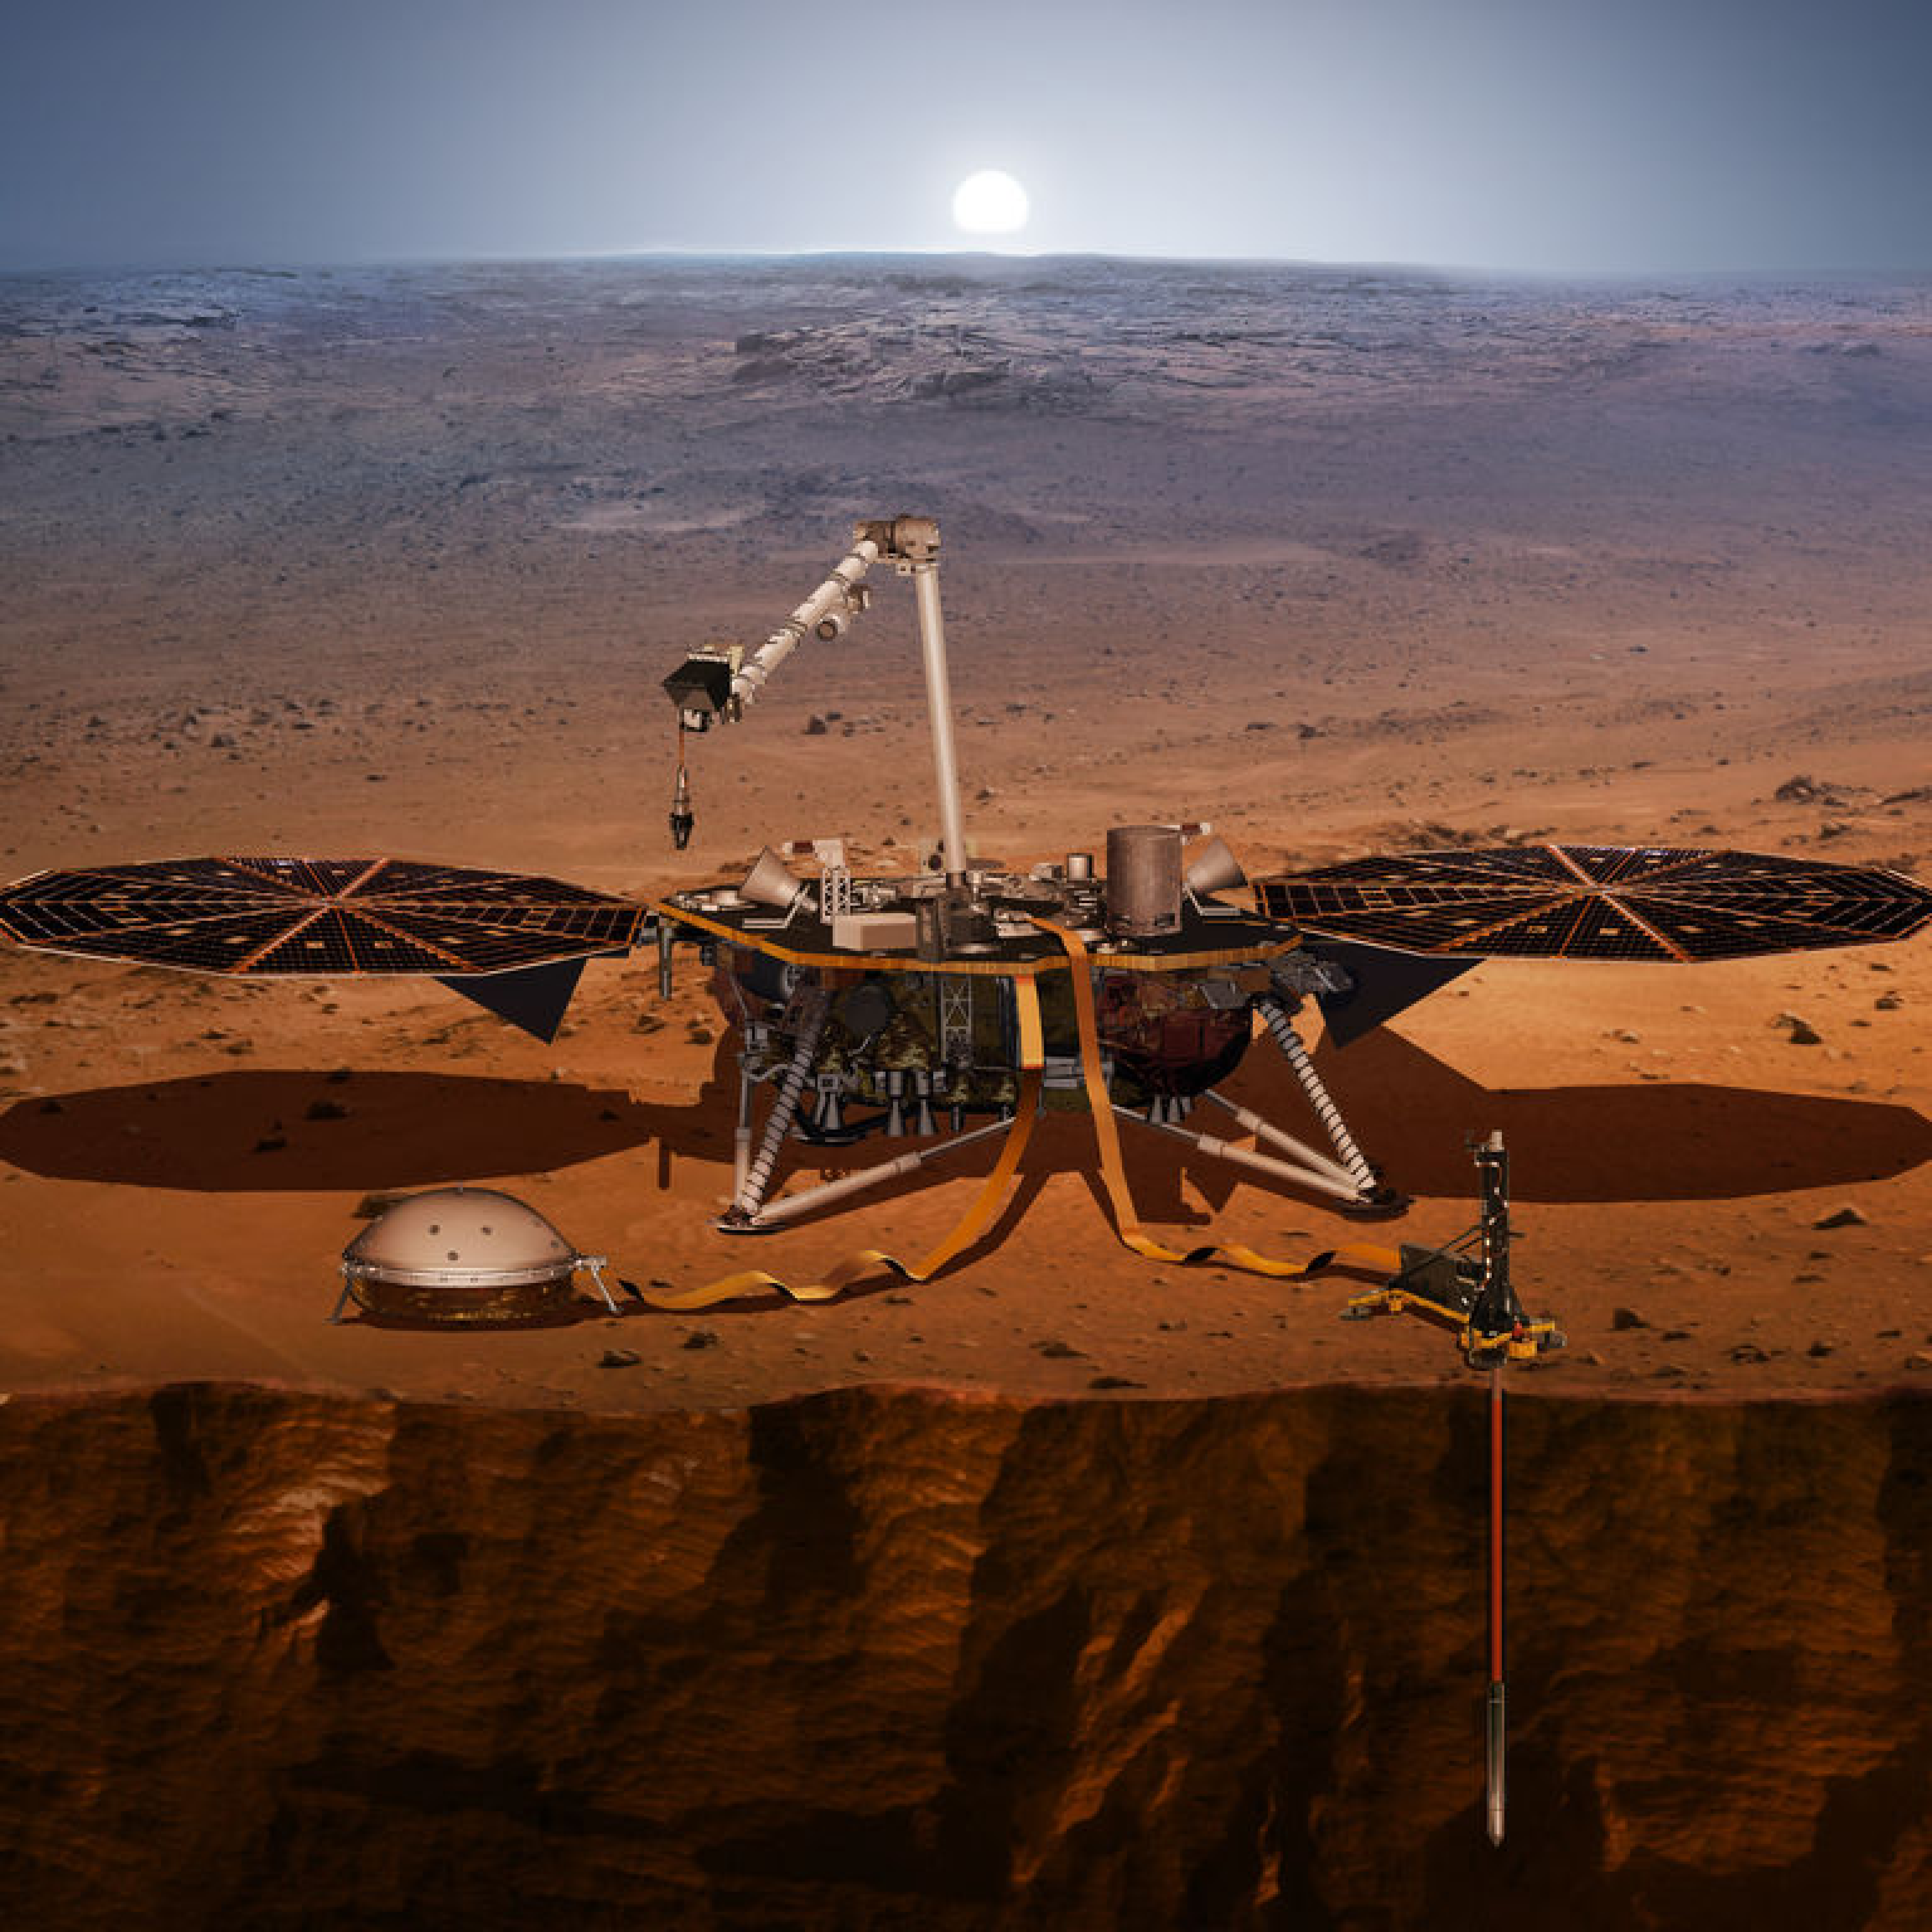 Castrol on board for Nasa Insight mission to Mars